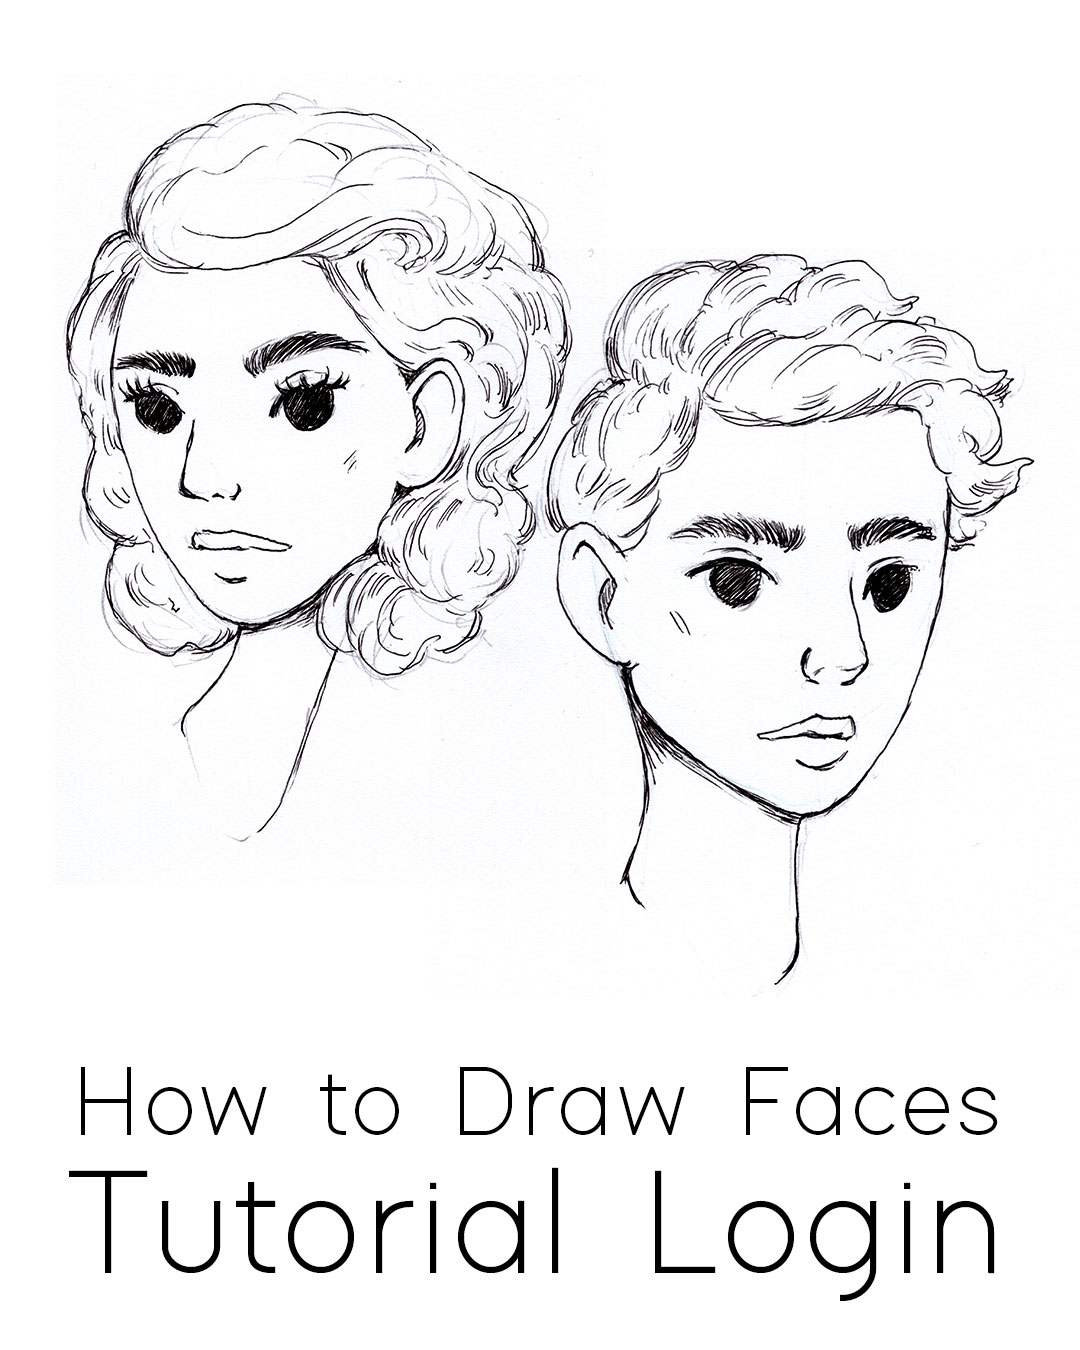 How to Draw Faces Tutorial, Step by Step Process for drawing people & Characters from imagination #tutorial #drawing #faces